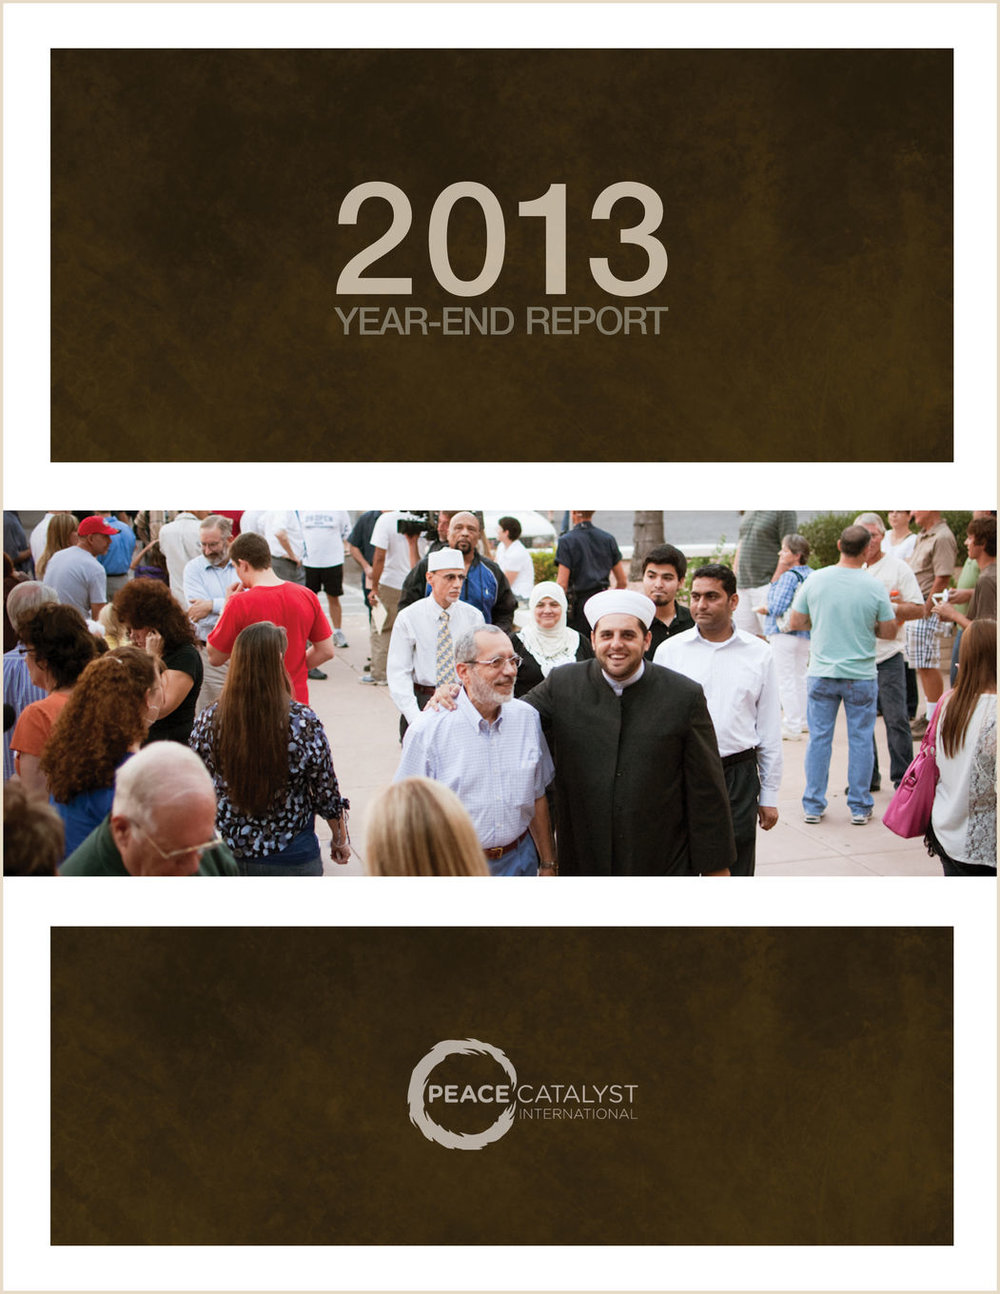 peace-catalyst-2013-annual-report2-cover.jpg